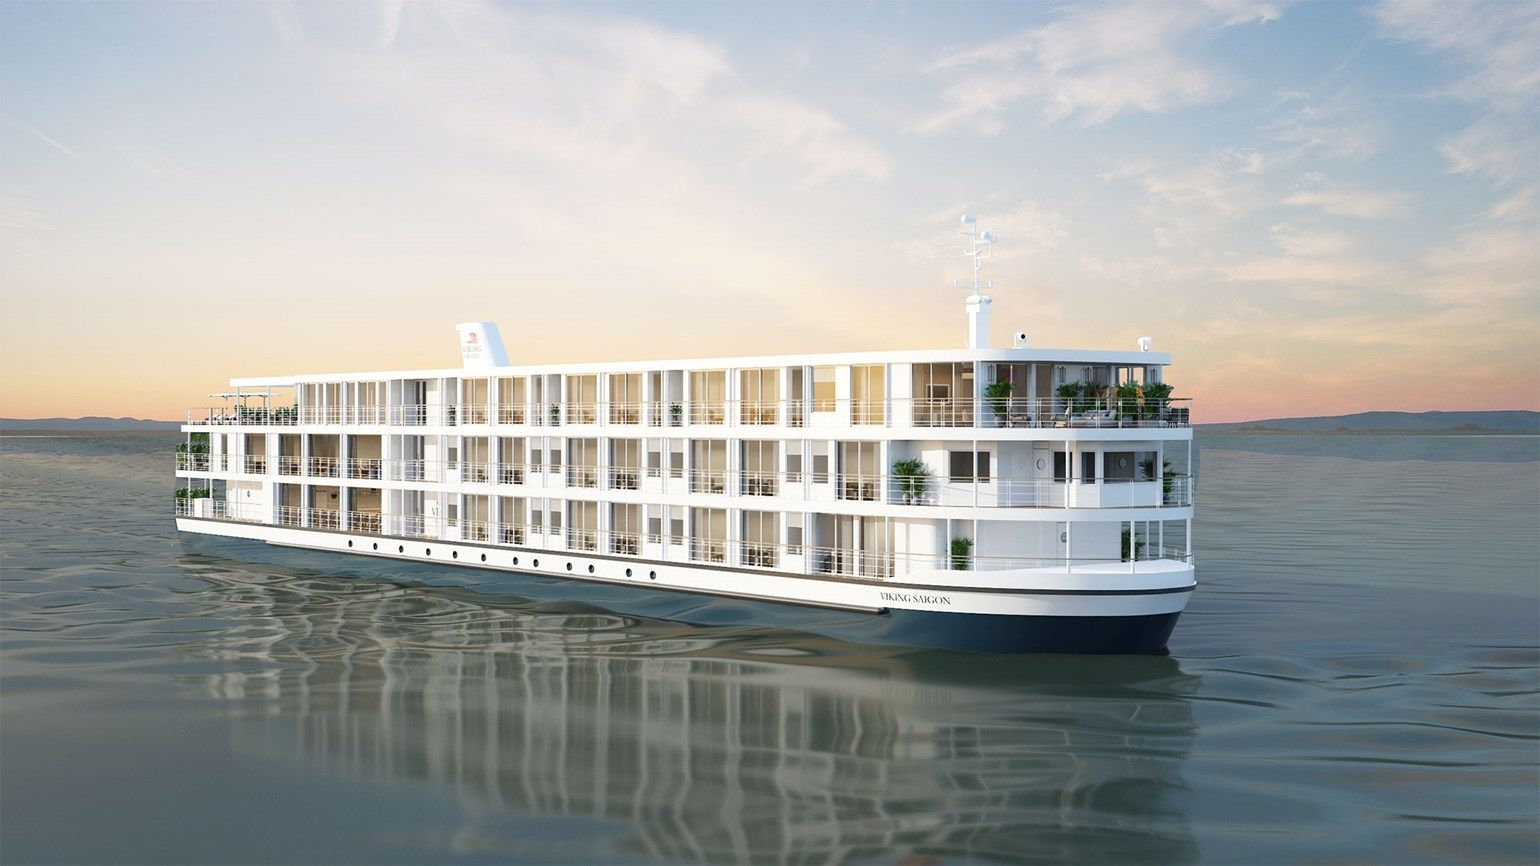 Viking to launch newbuild for Mekong sailings in 2021